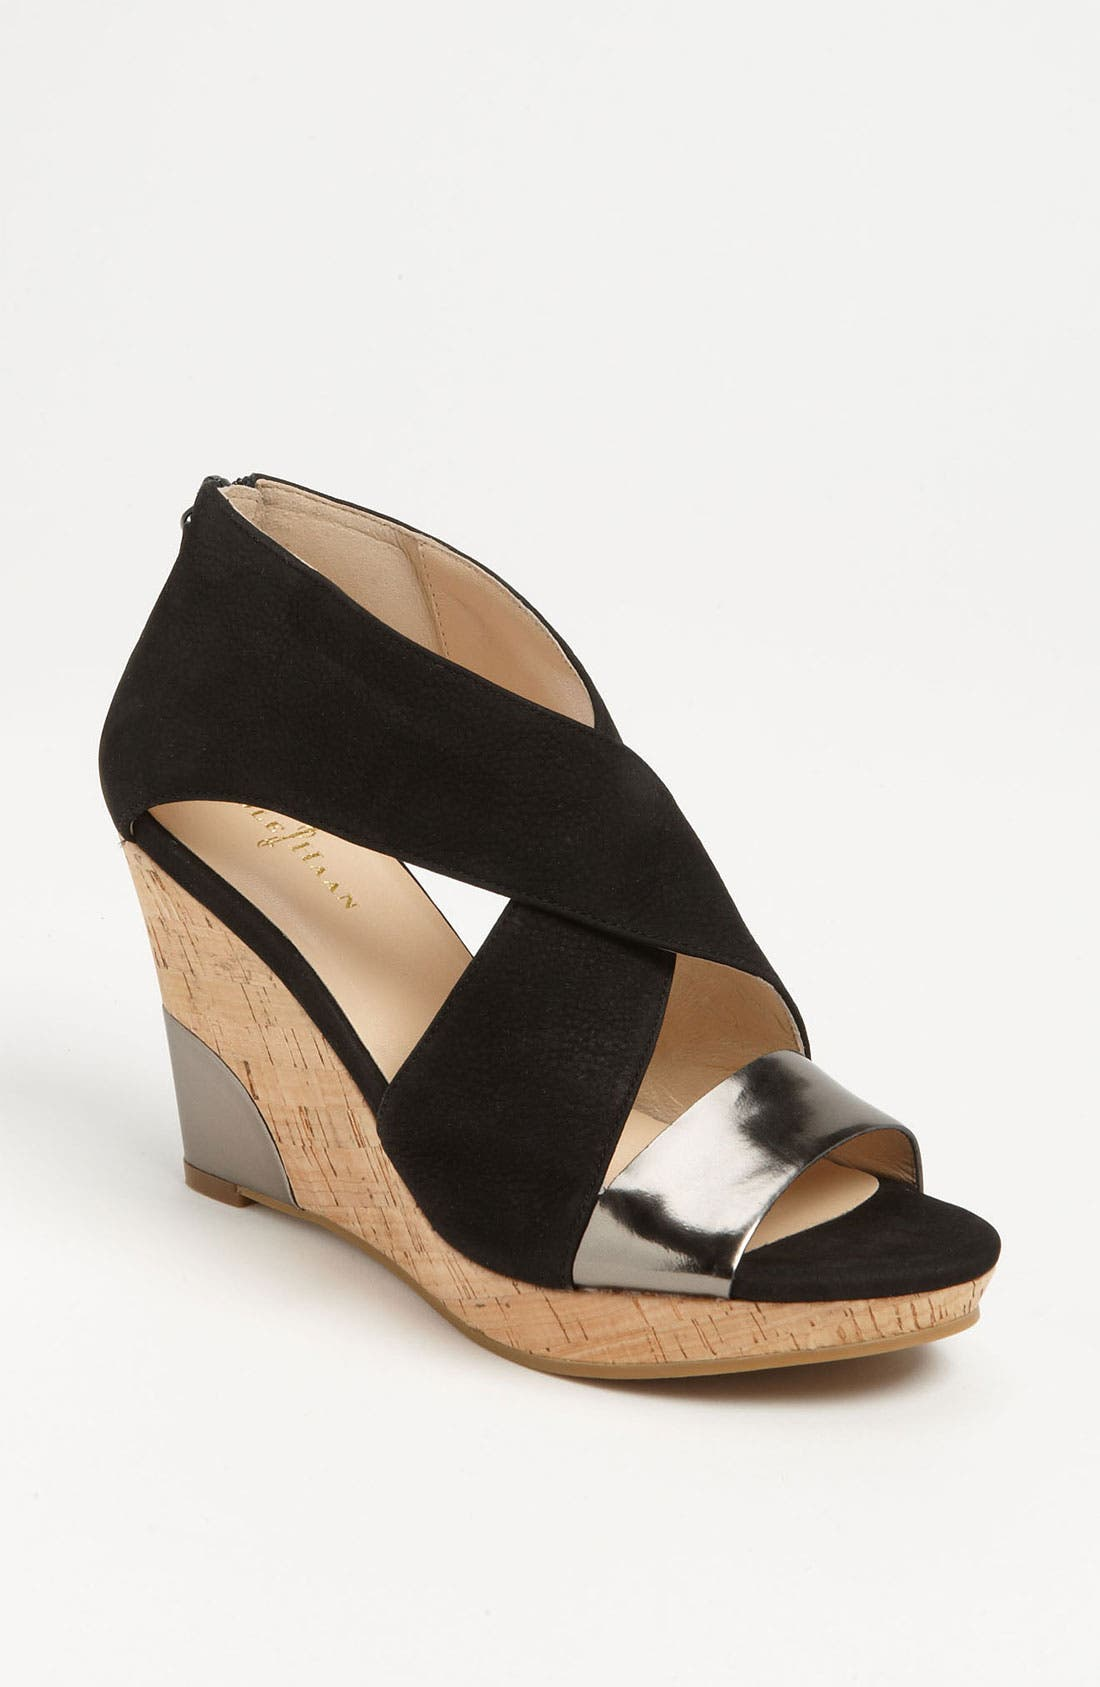 Alternate Image 1 Selected - Cole Haan 'Air Irving' Wedge Sandal